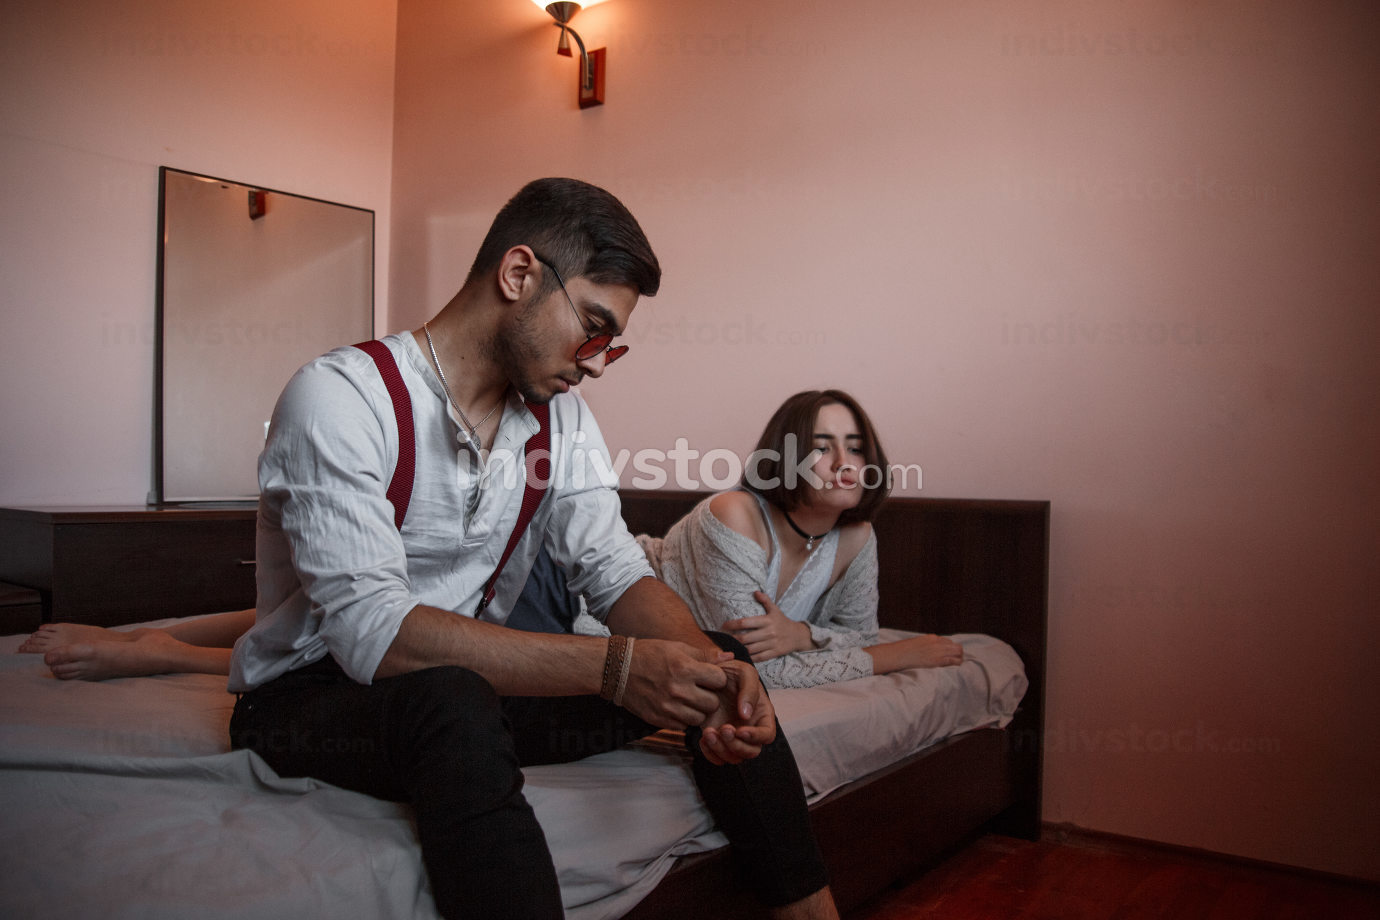 a young stylish guy in glasses sits on the edge of the bed with a thoughtful sad face